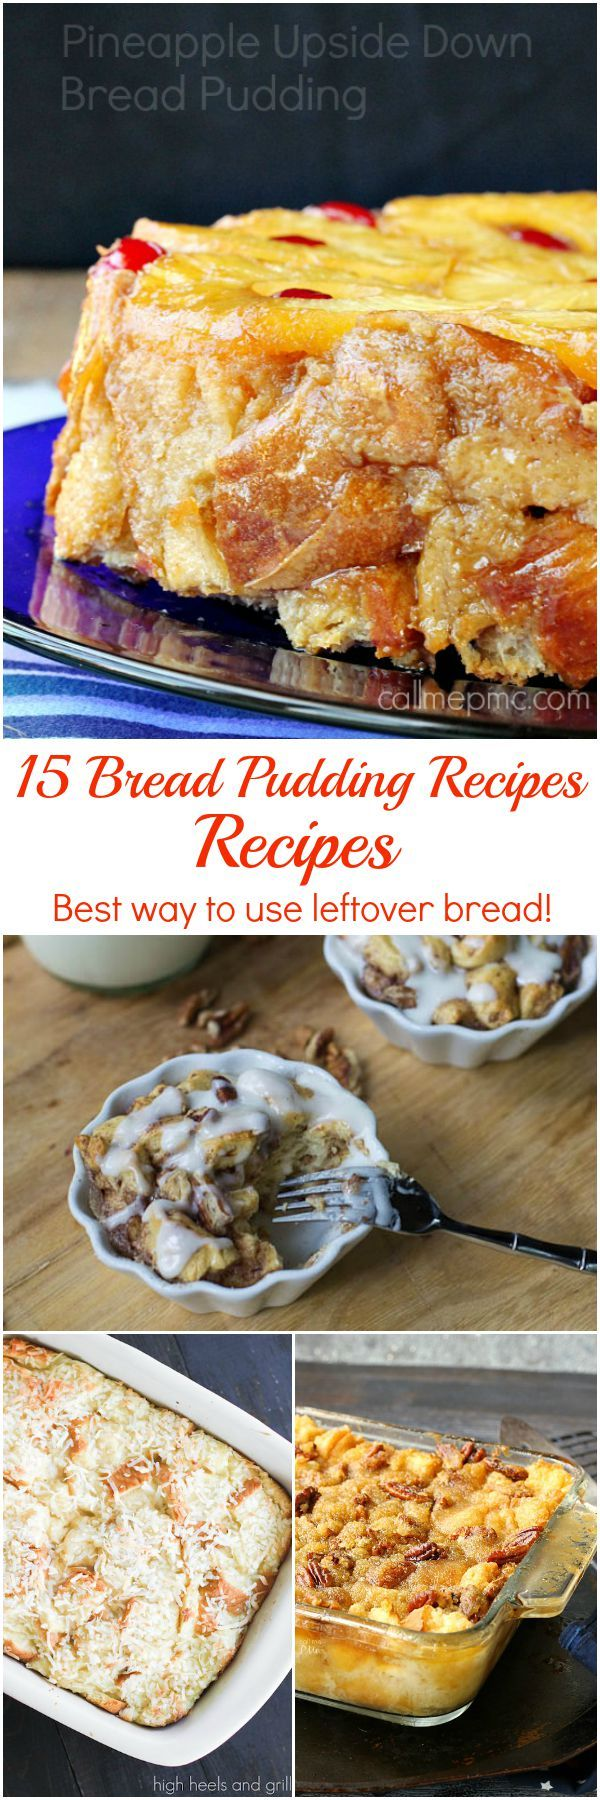 15 Bread Pudding Recipes  Best way to use Leftover bread.